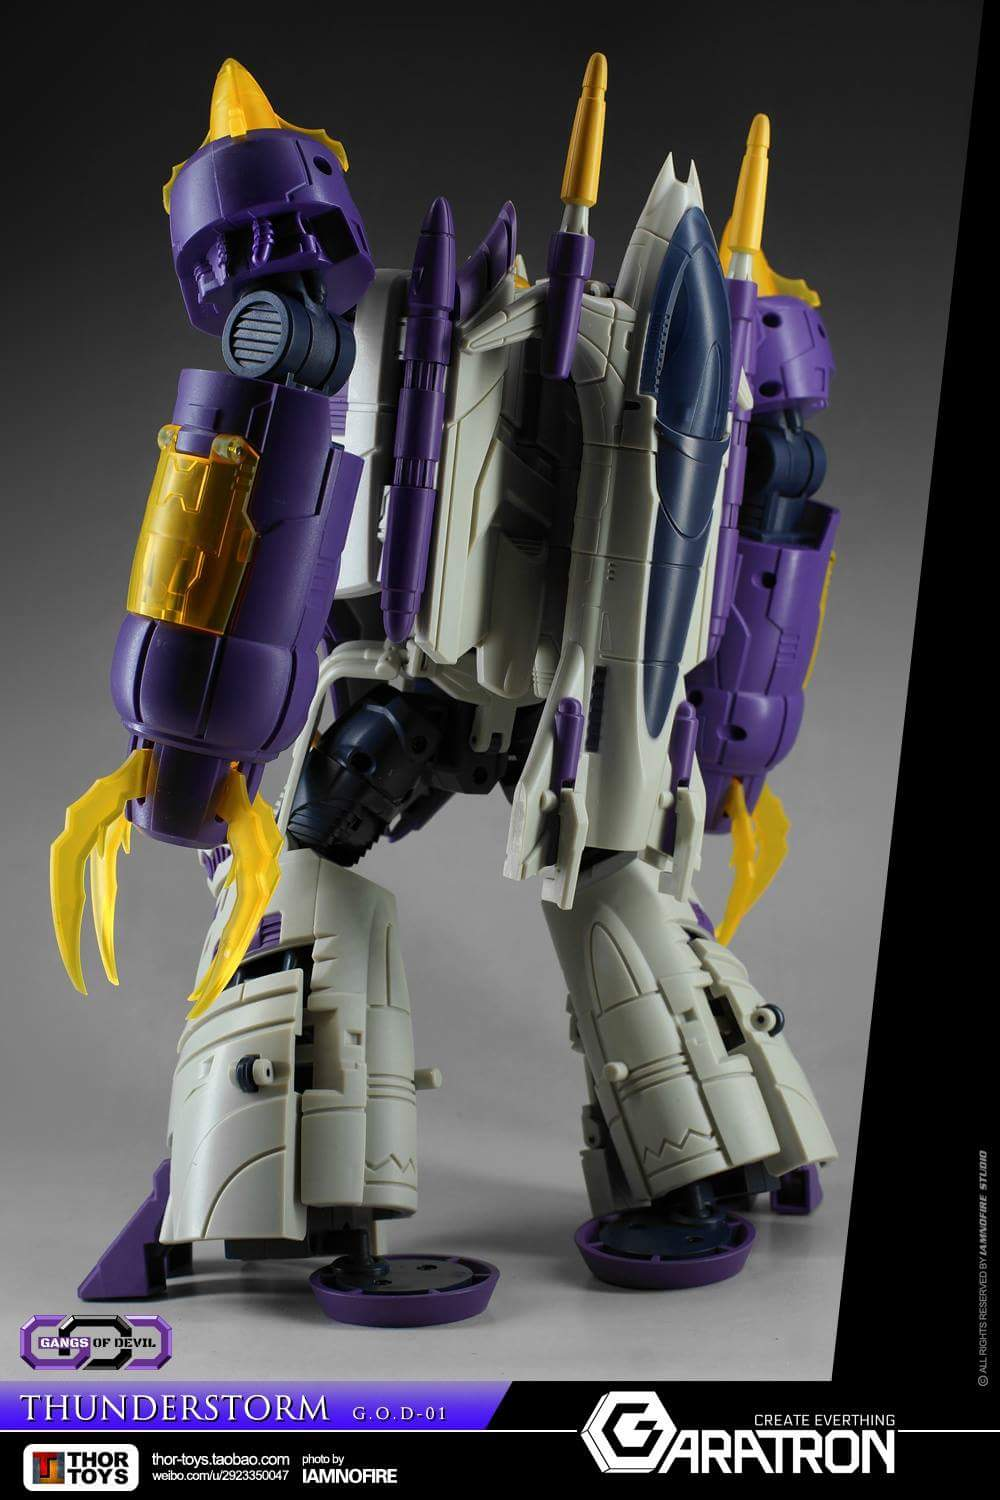 [Garatron] Produit Tiers - Gand of Devils G.O.D-01 Thunderstorm - aka Thunderwing des BD TF d'IDW - Page 2 3yYisRS7